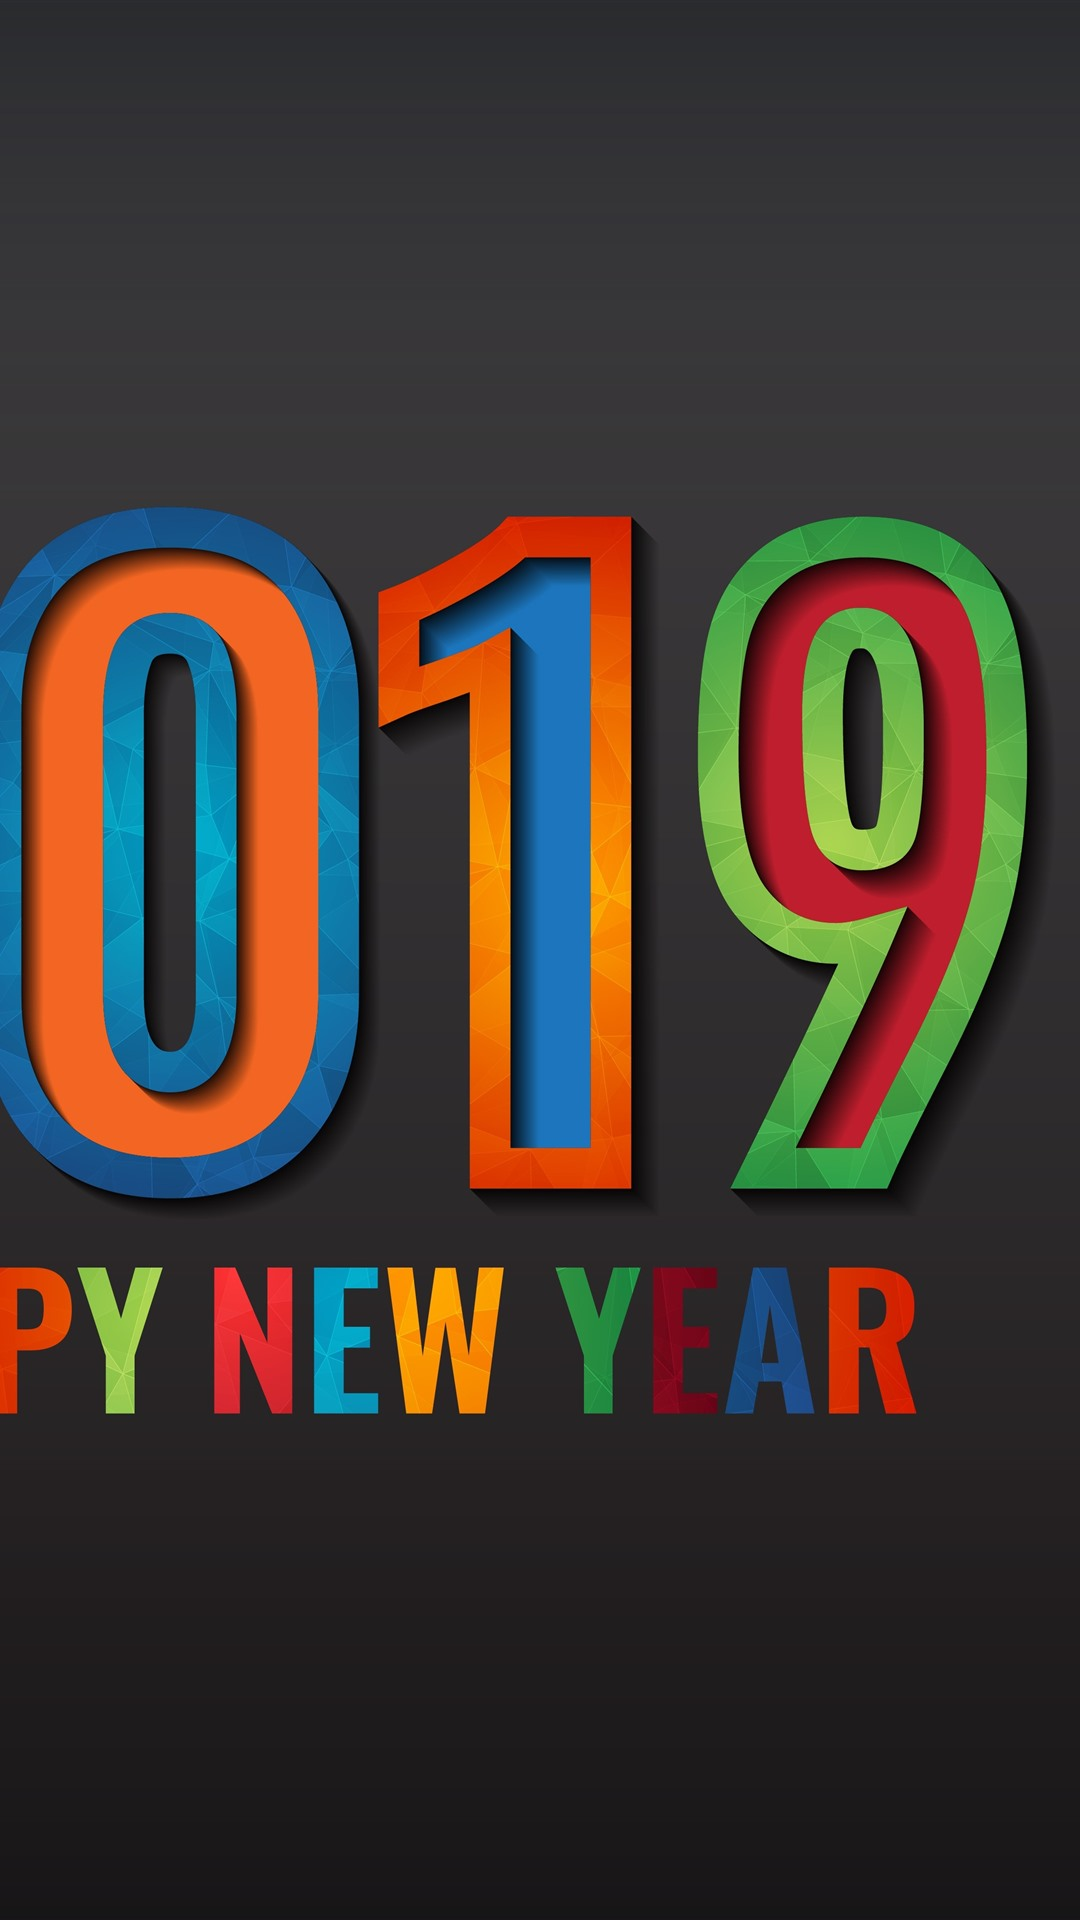 Happy New Year 2019 1242x2688 iPhone XS Max wallpaper